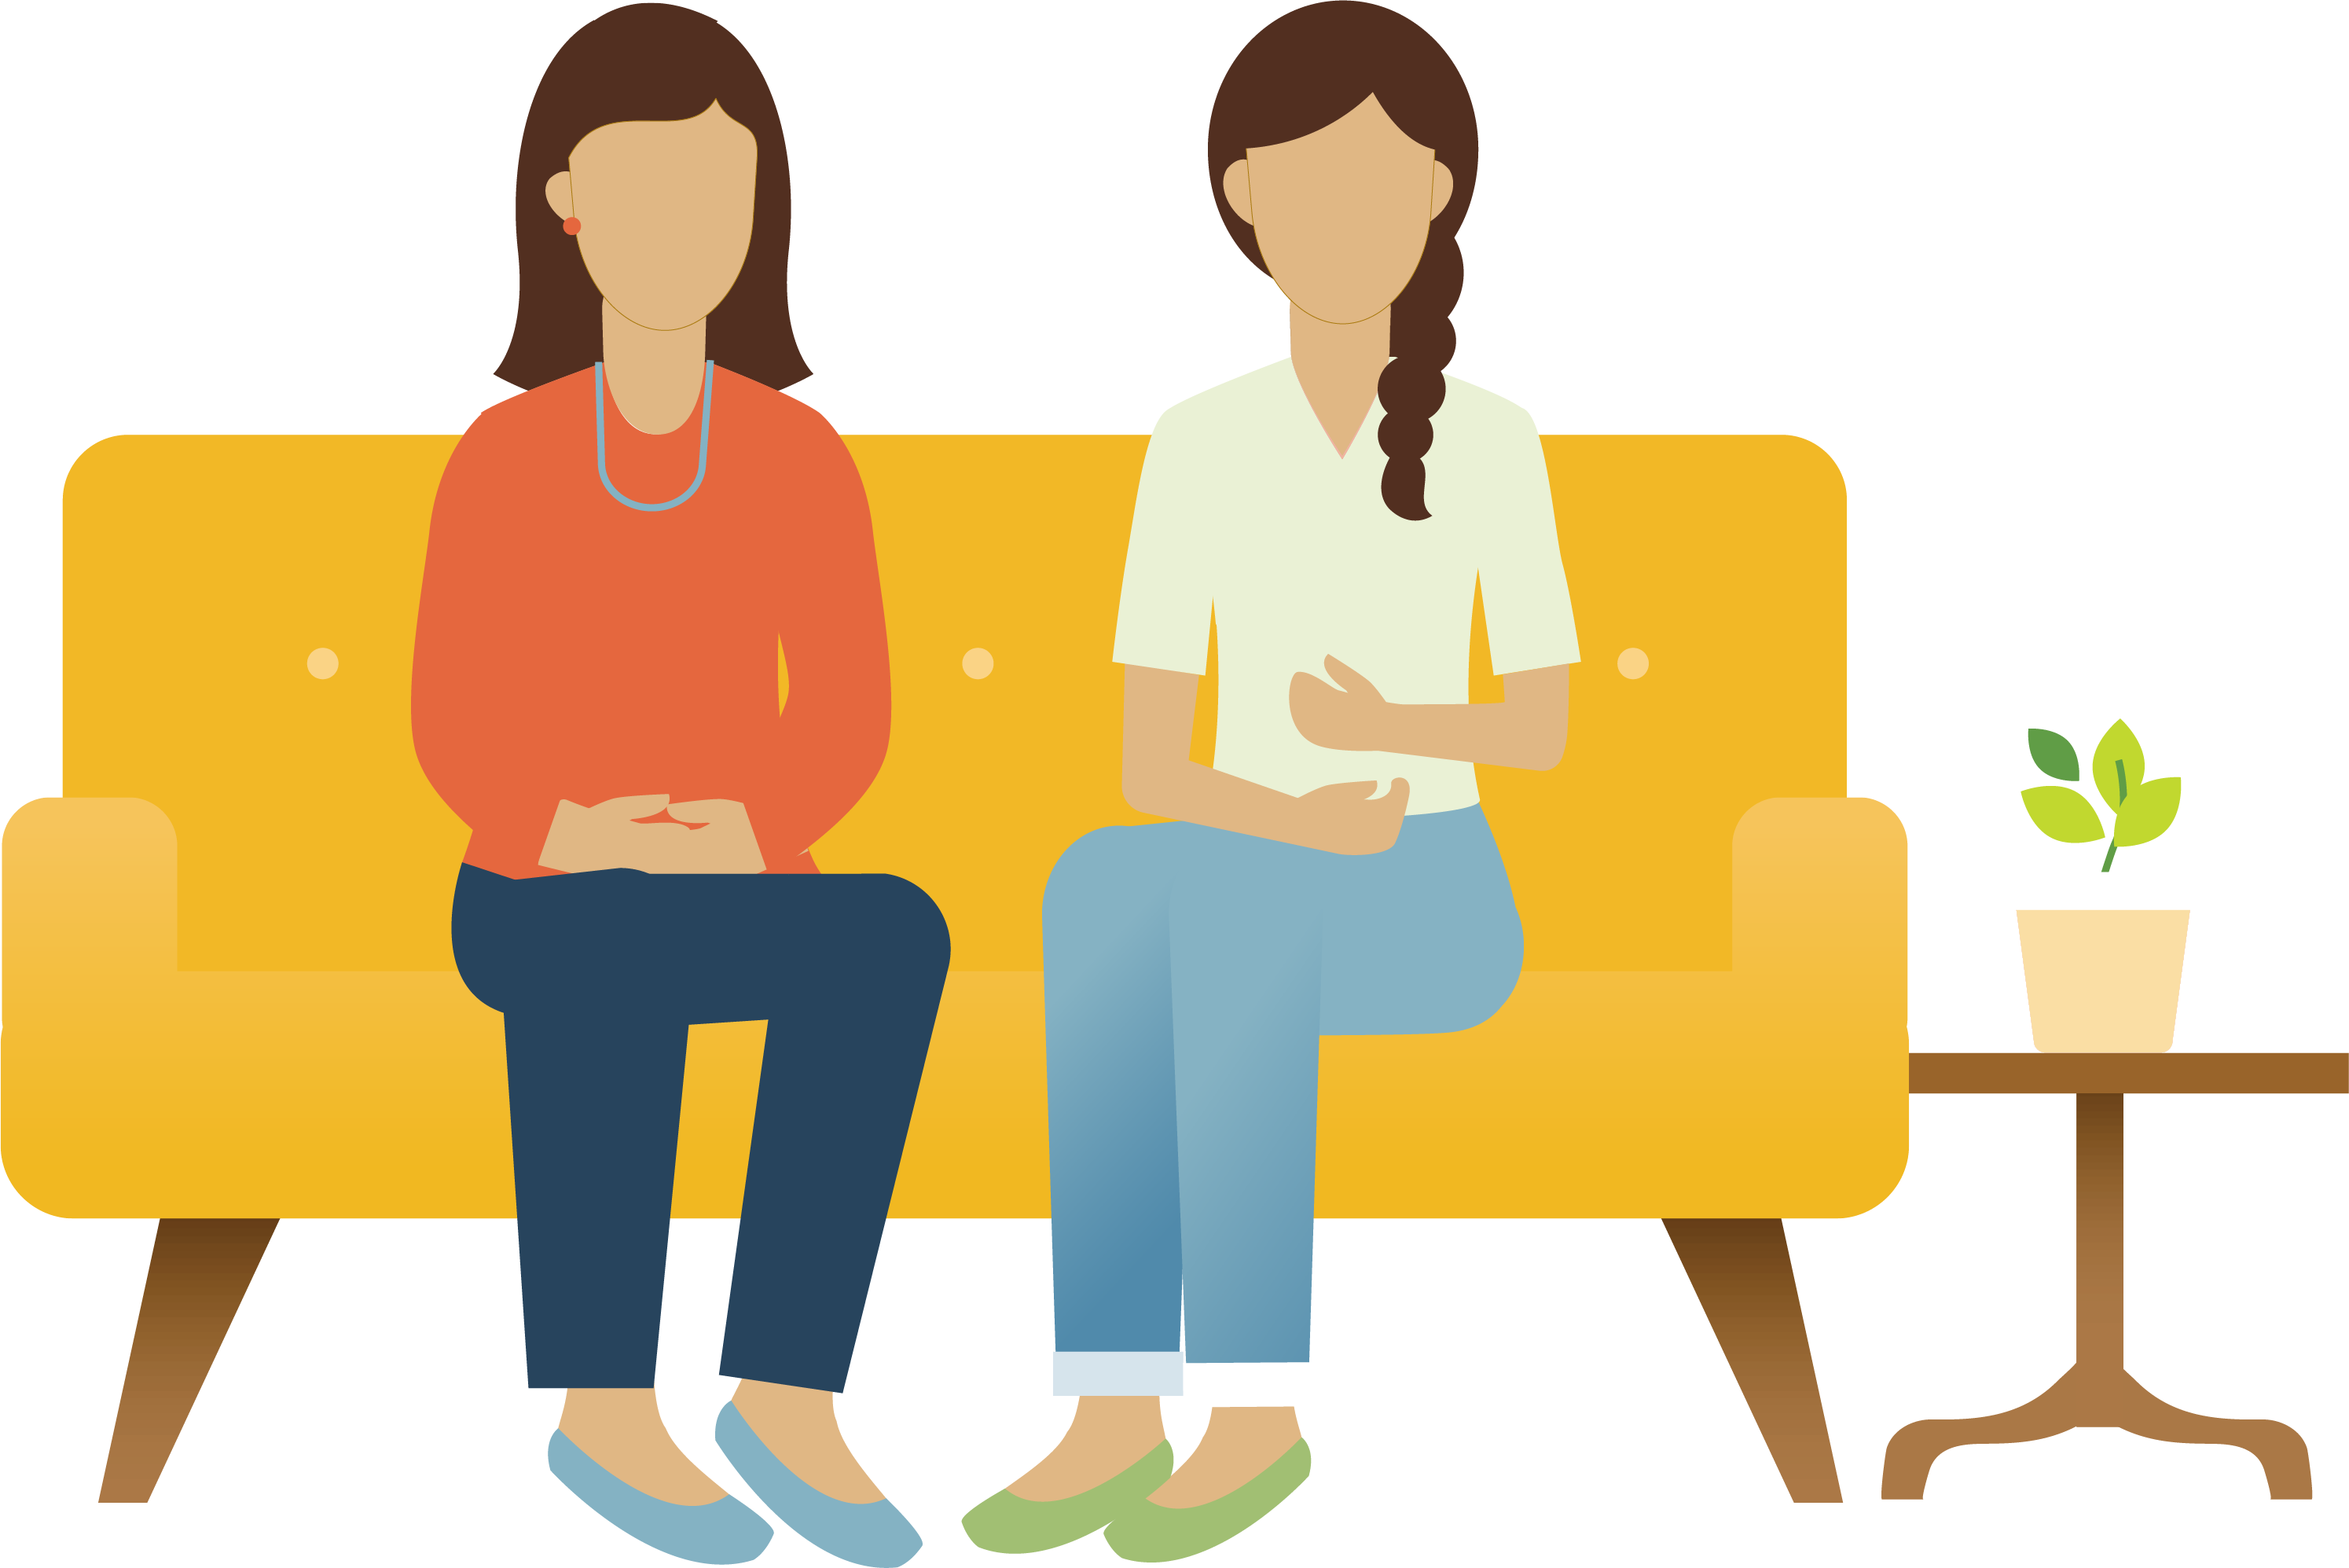 Image of two women on a couch